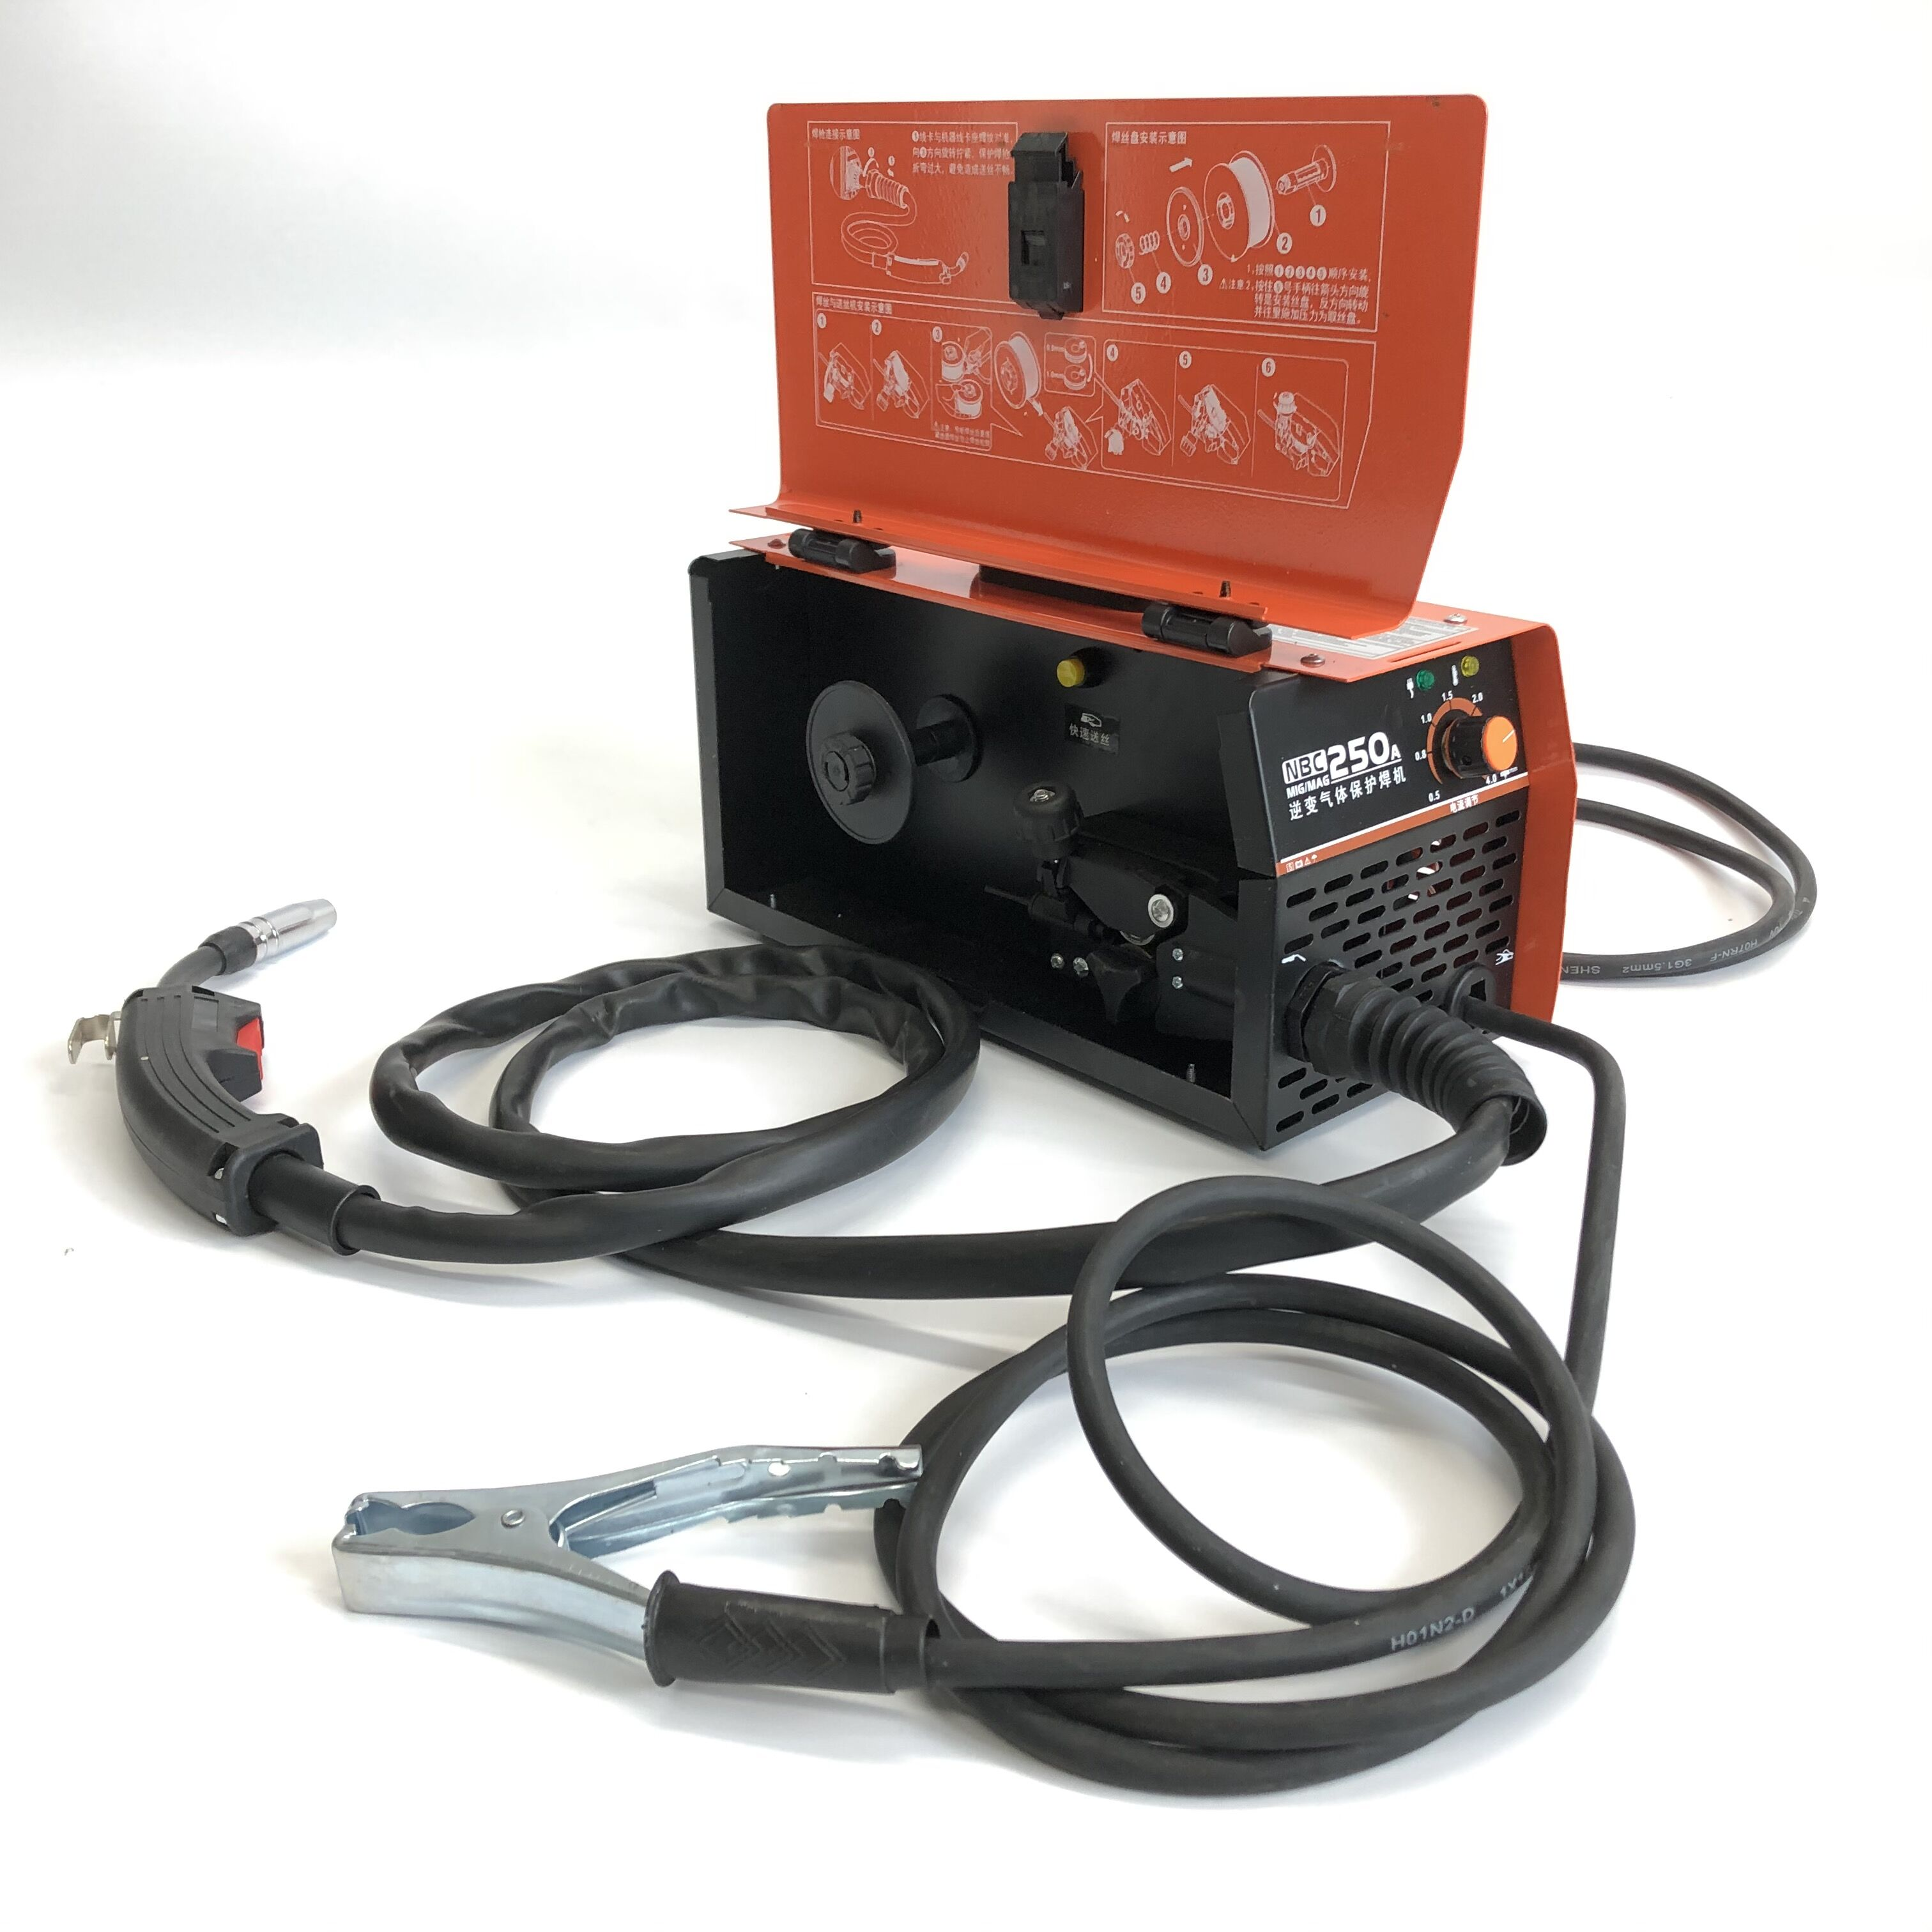 Home Shielded  Dioxide Machine Machine Free Carbon Integrated Machine Gas Welding Two 220V Welding Small Gas